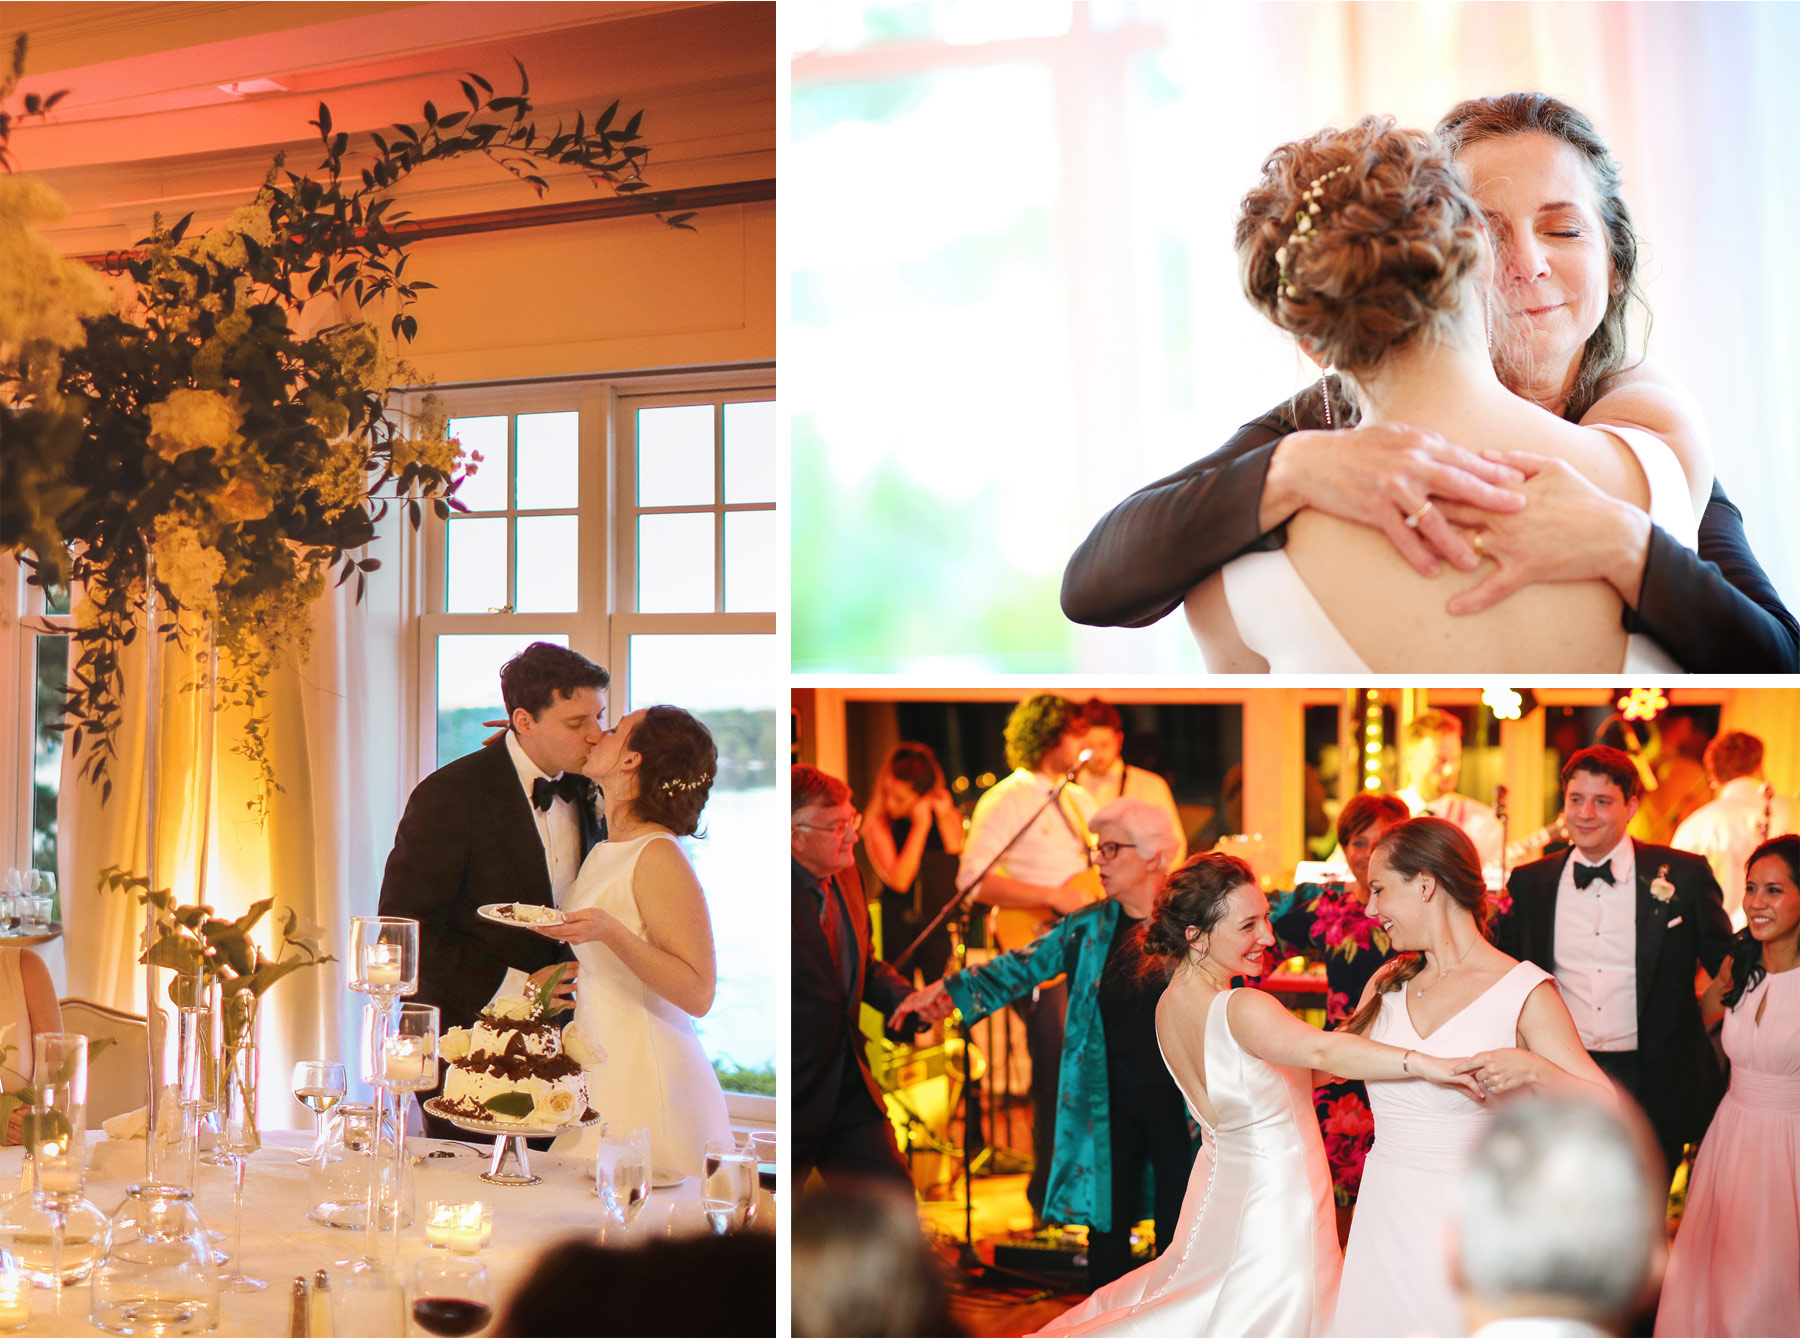 18-Minneapolis-Minnesota-Wedding-Andrew-Vick-Photography-Minikahda-Country-Club-Dance-Kiss-Bride-Groom-Reception-Ashton-and-Kevin.jpg